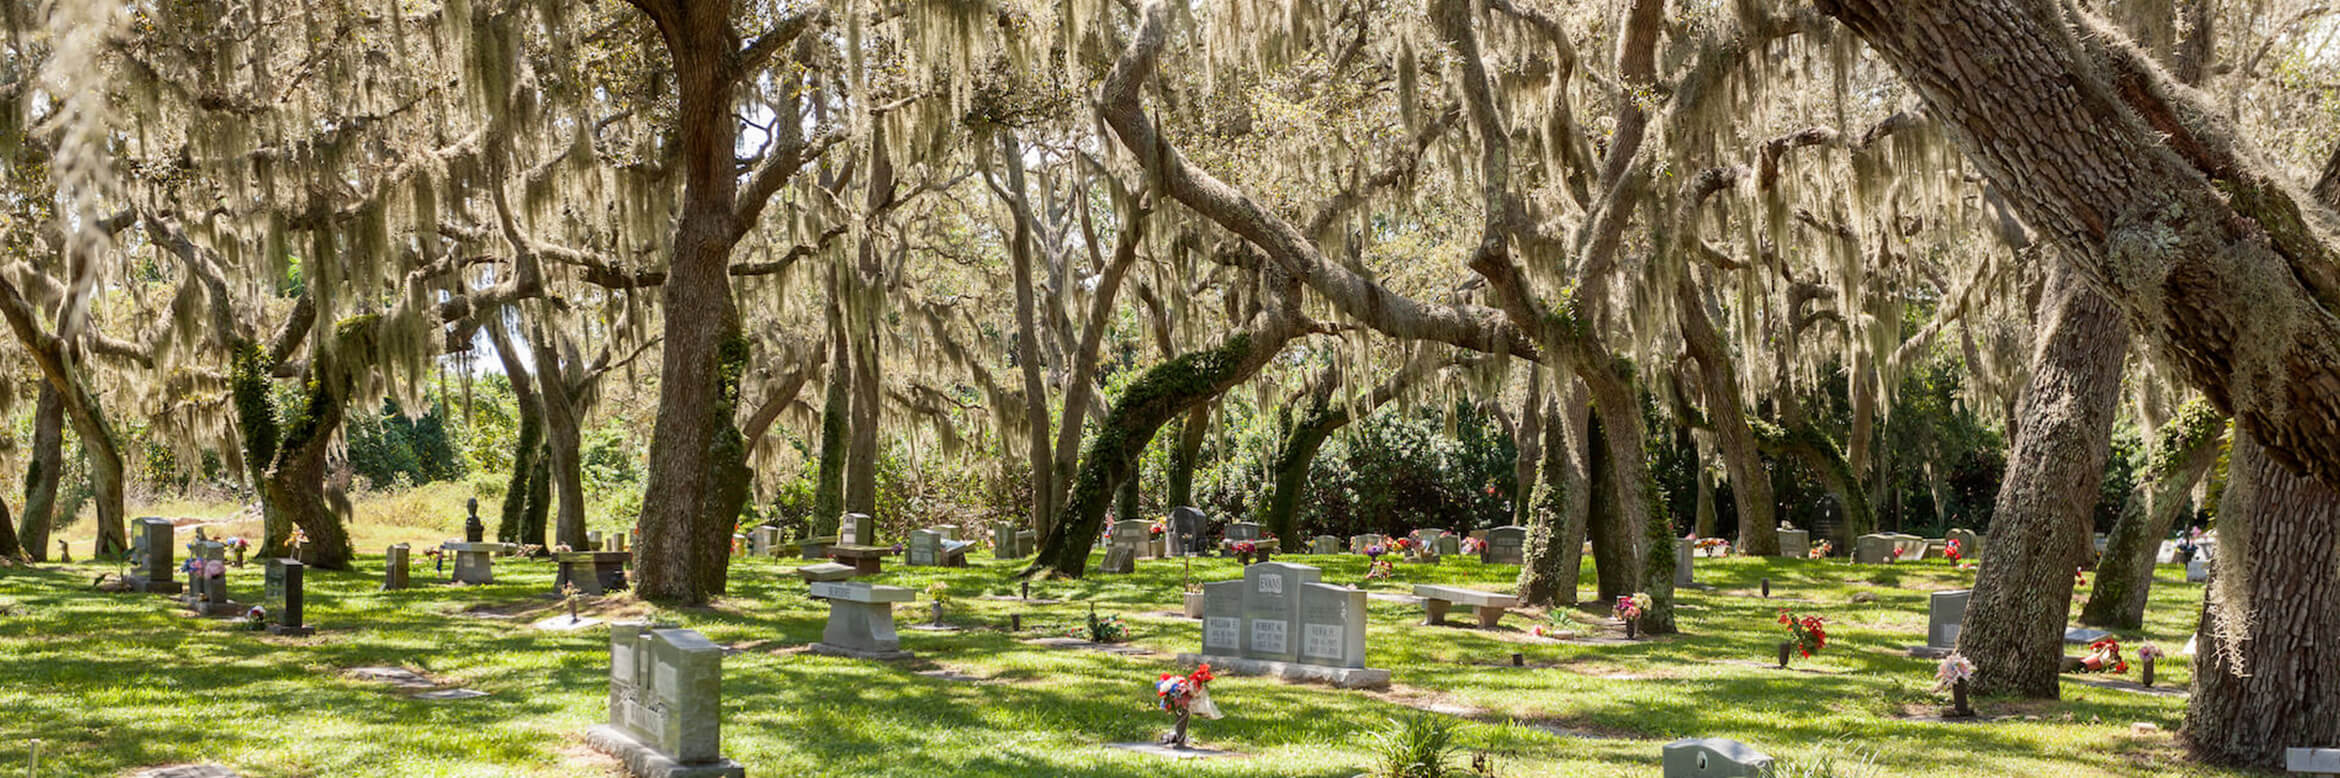 North Brevard Funeral Home and Oaklawn Memorial Gardens in Titusville, FL.